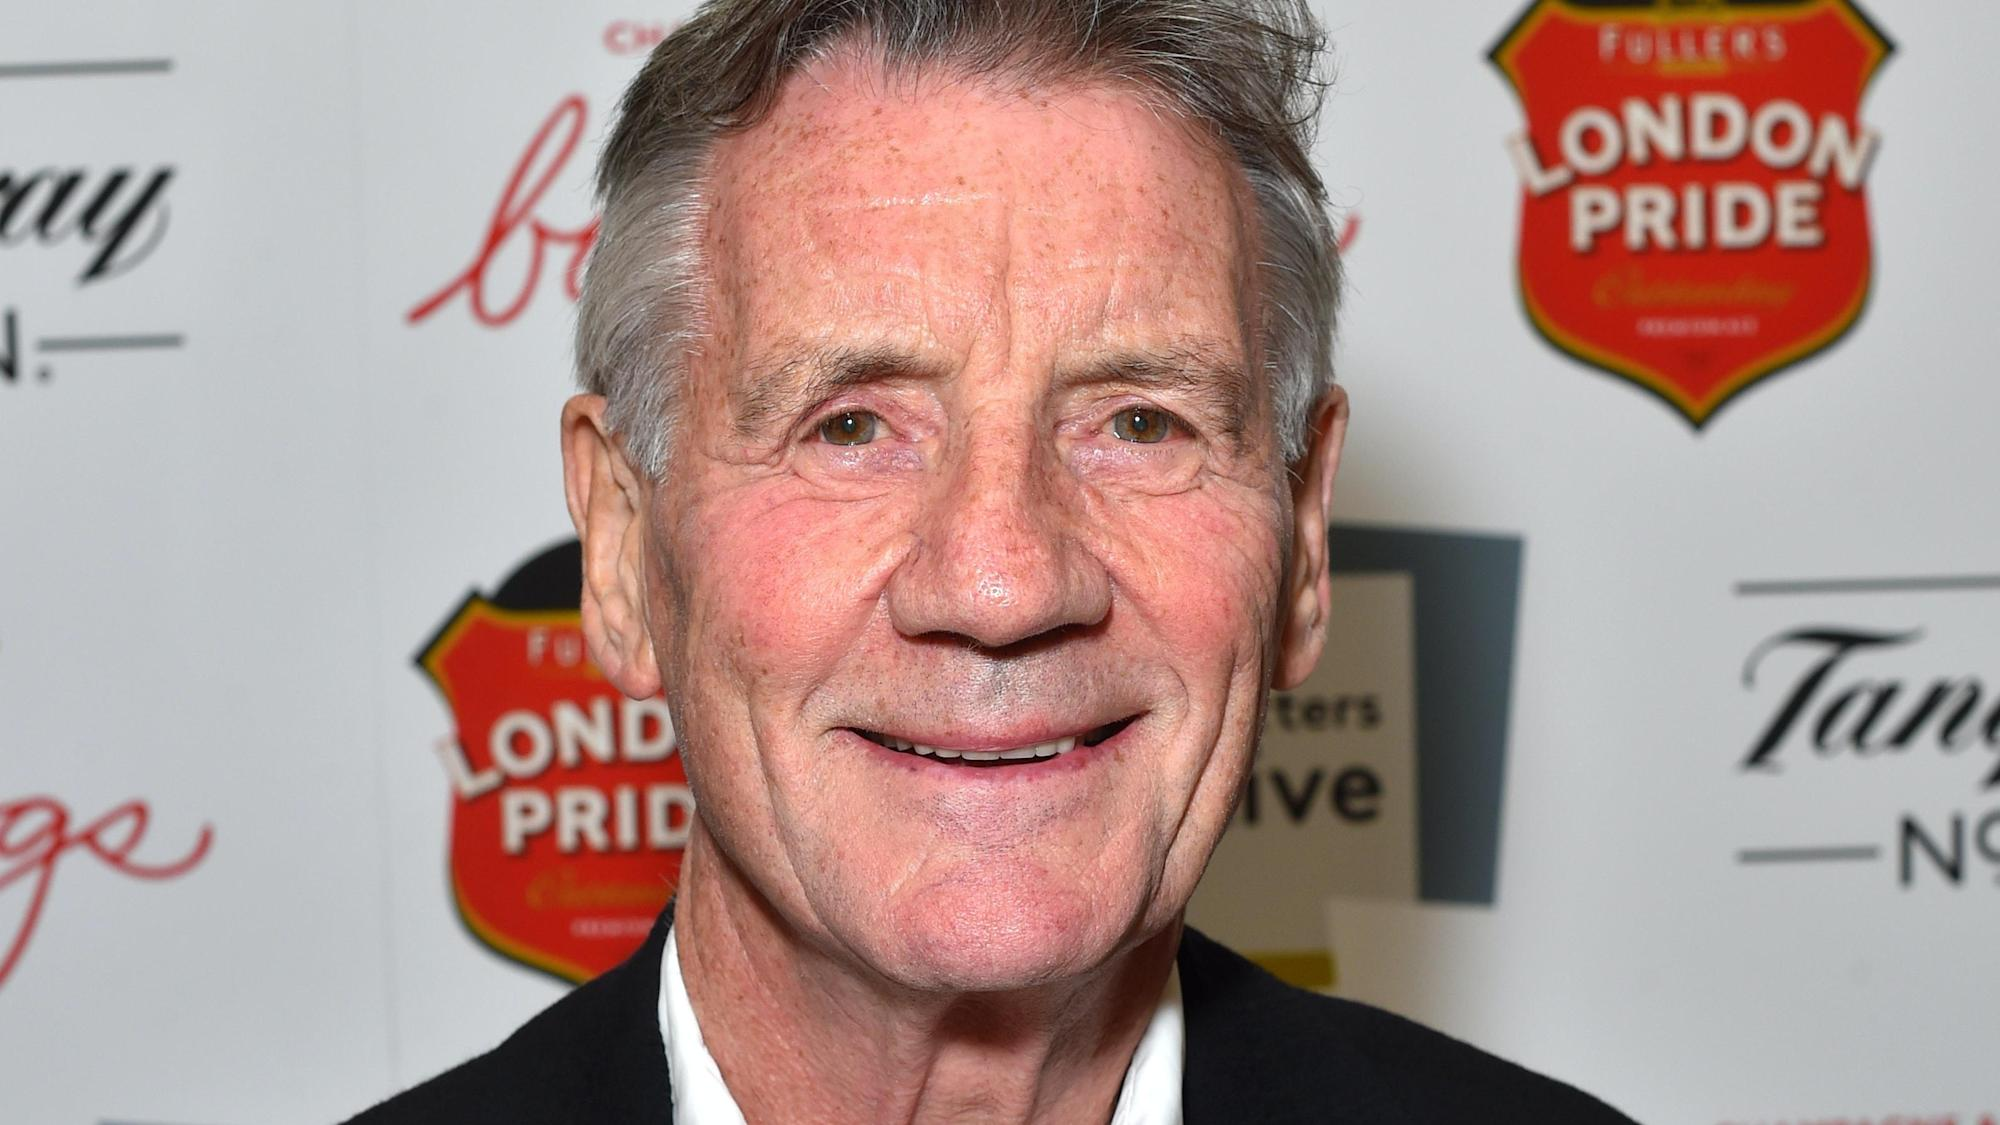 Sir Michael Palin opens up about falling ill while climbing in the Himalayas